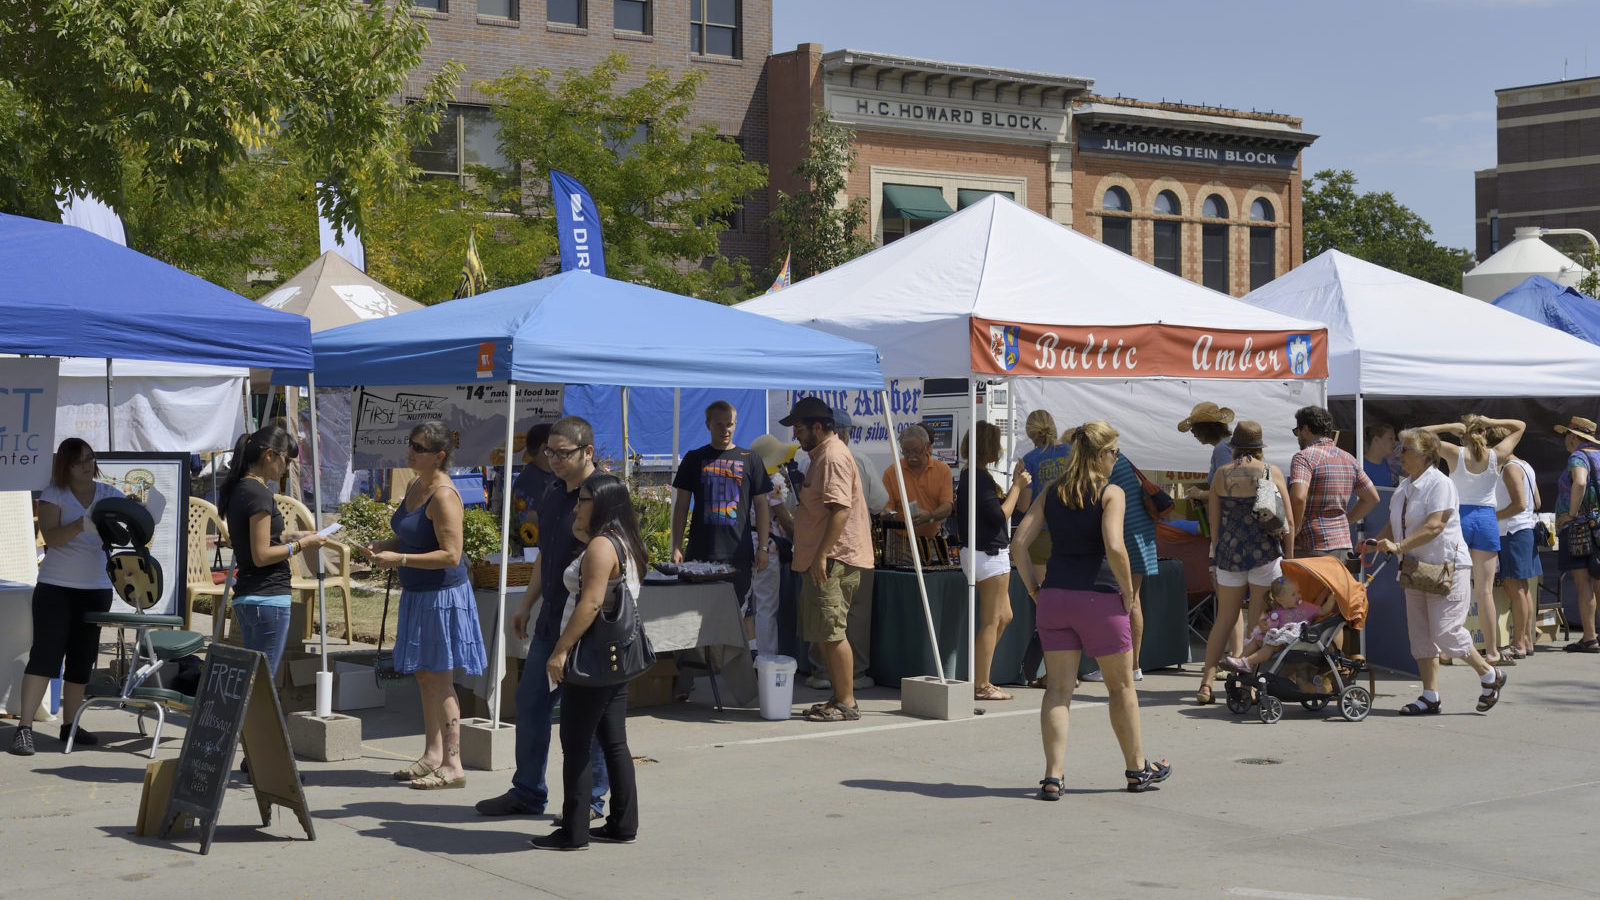 Street festival with arts, crafts, food, amusement rides, and concerts.